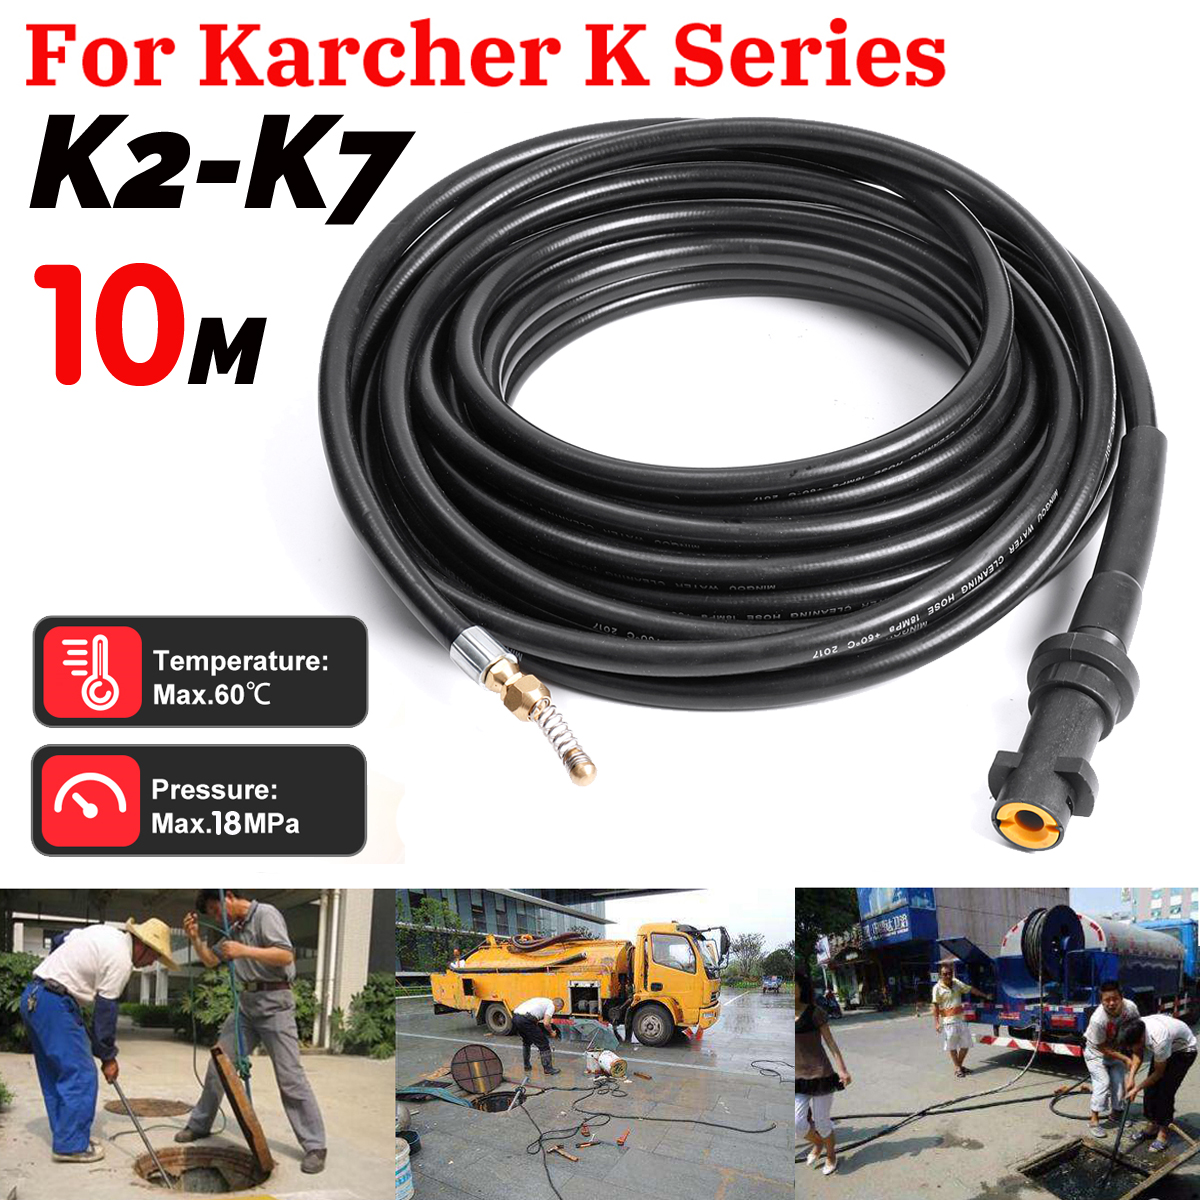 10m Drain Sewer Pipe Cleaning Hose Jet Nozzle For Karcher K2 K7 Pressure Washer Walmart Canada